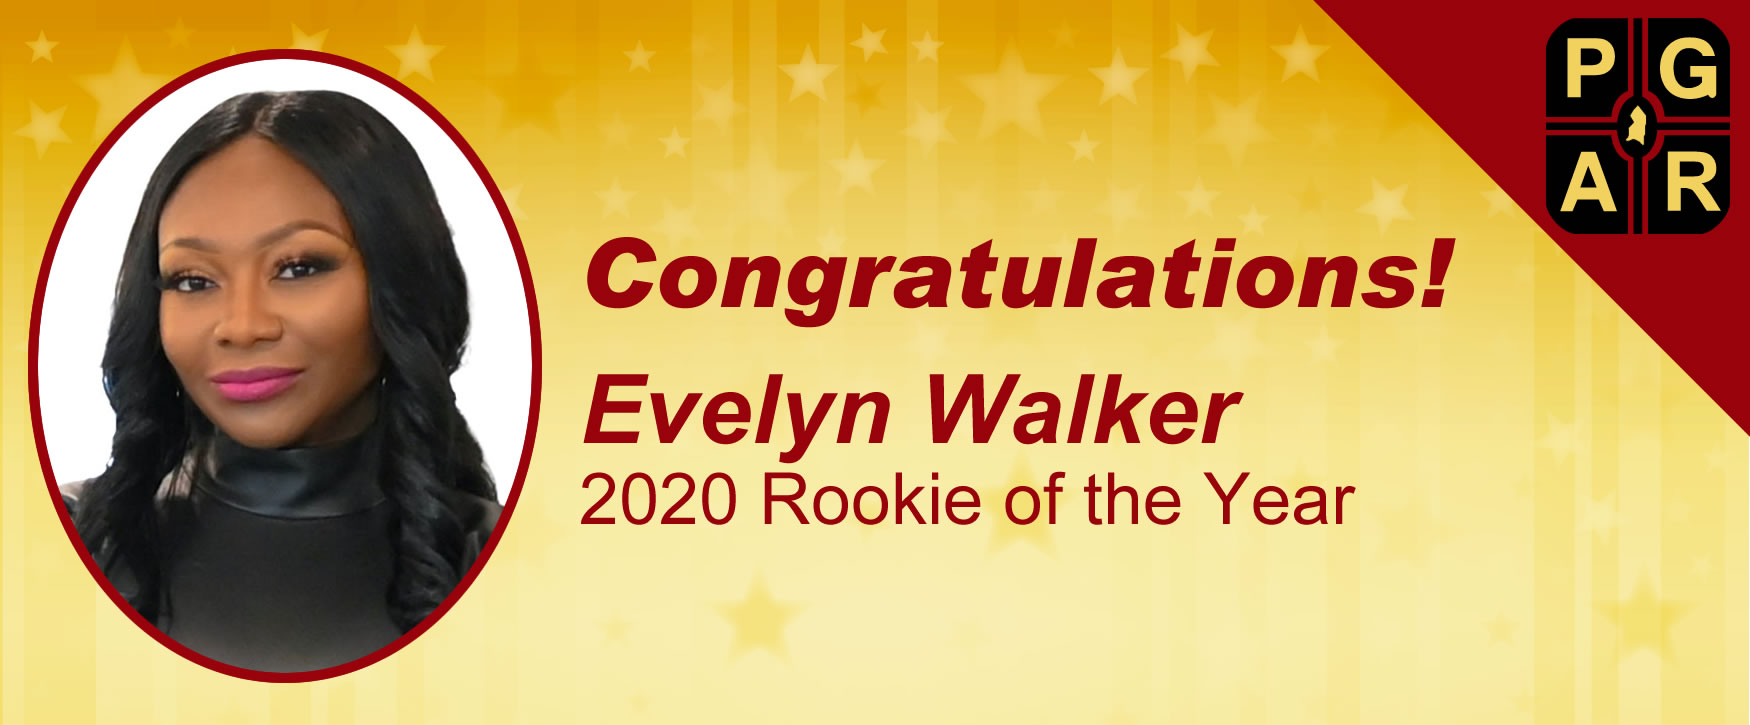 Congratulations to Evelyn Walker! 2020 Rookie REALTOR of the Year Award Winner